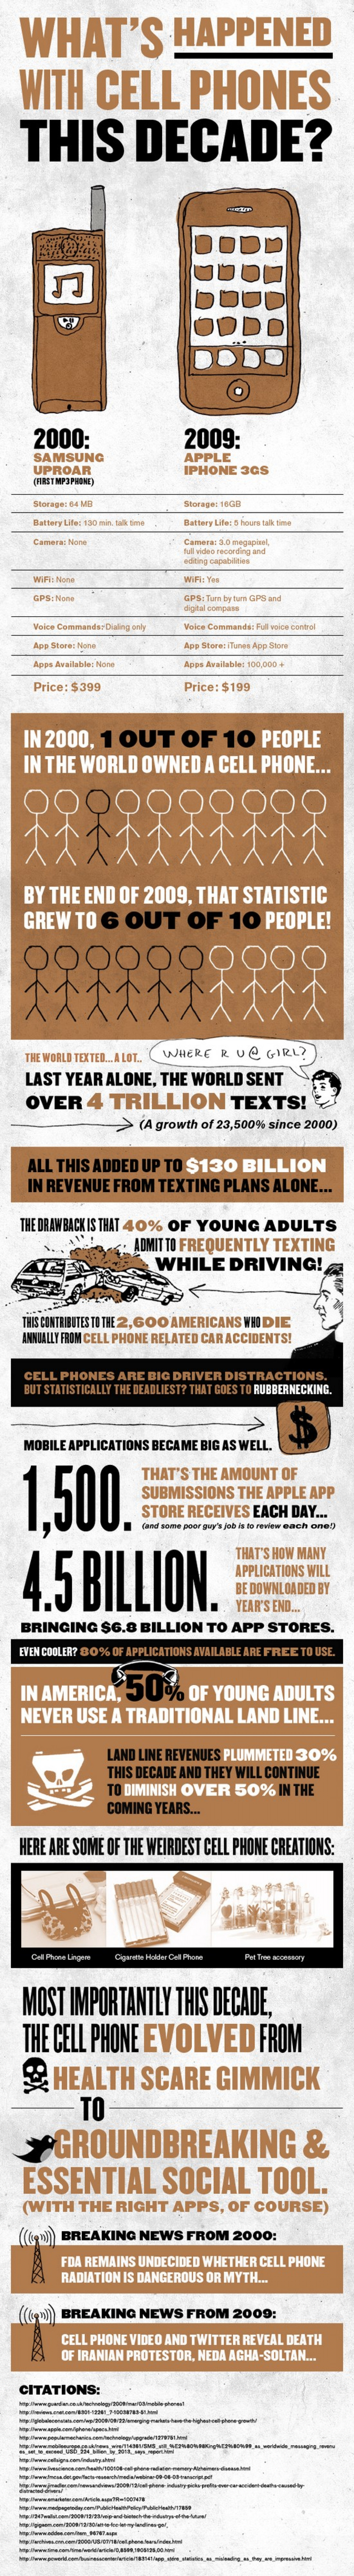 What's Happened With Cell Phones This Decade? Infographic